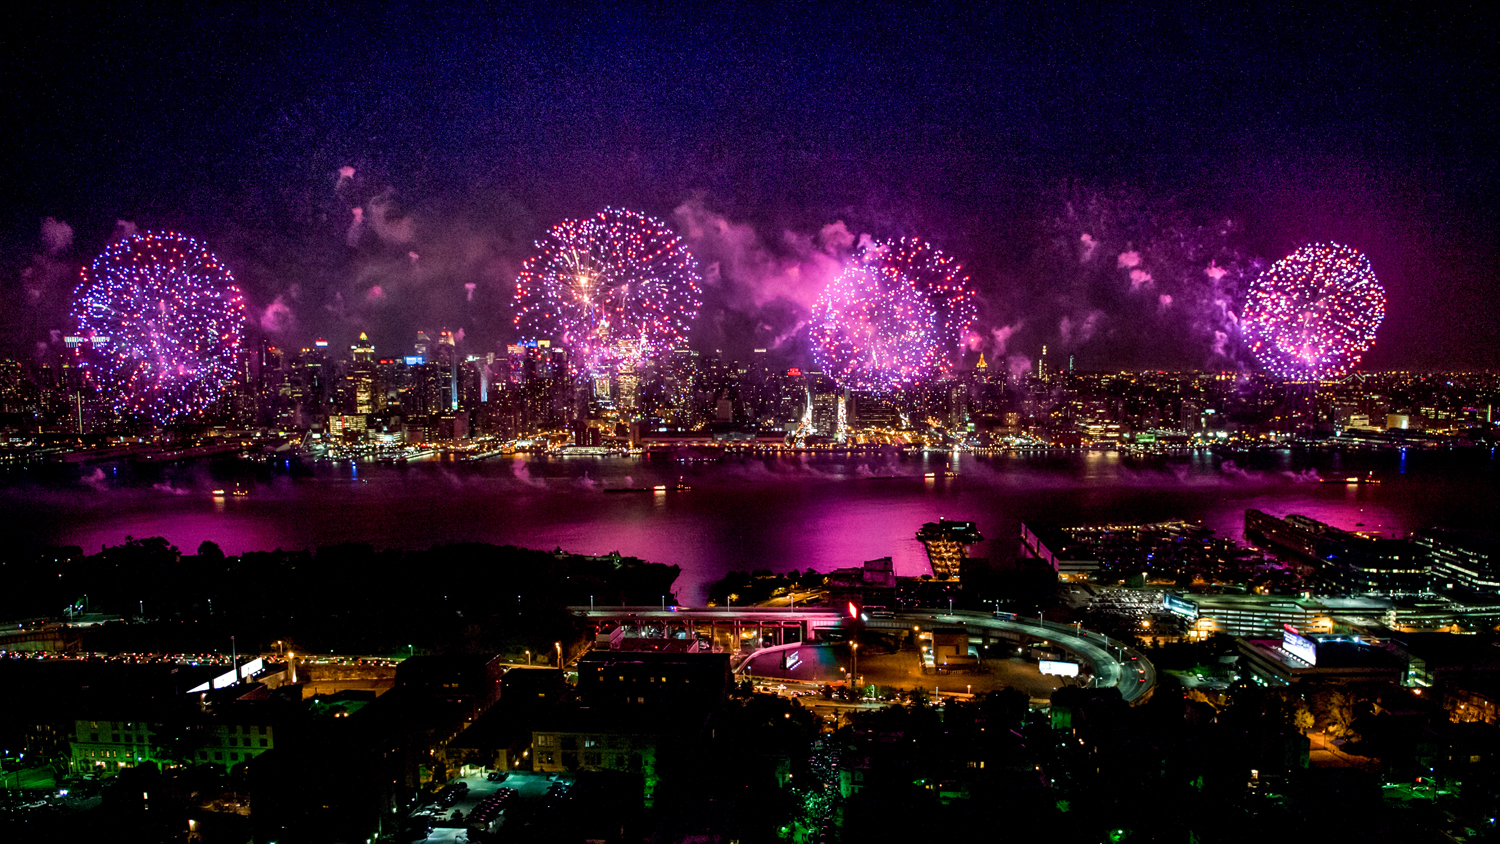 Gorgeous photos of last year's fireworks